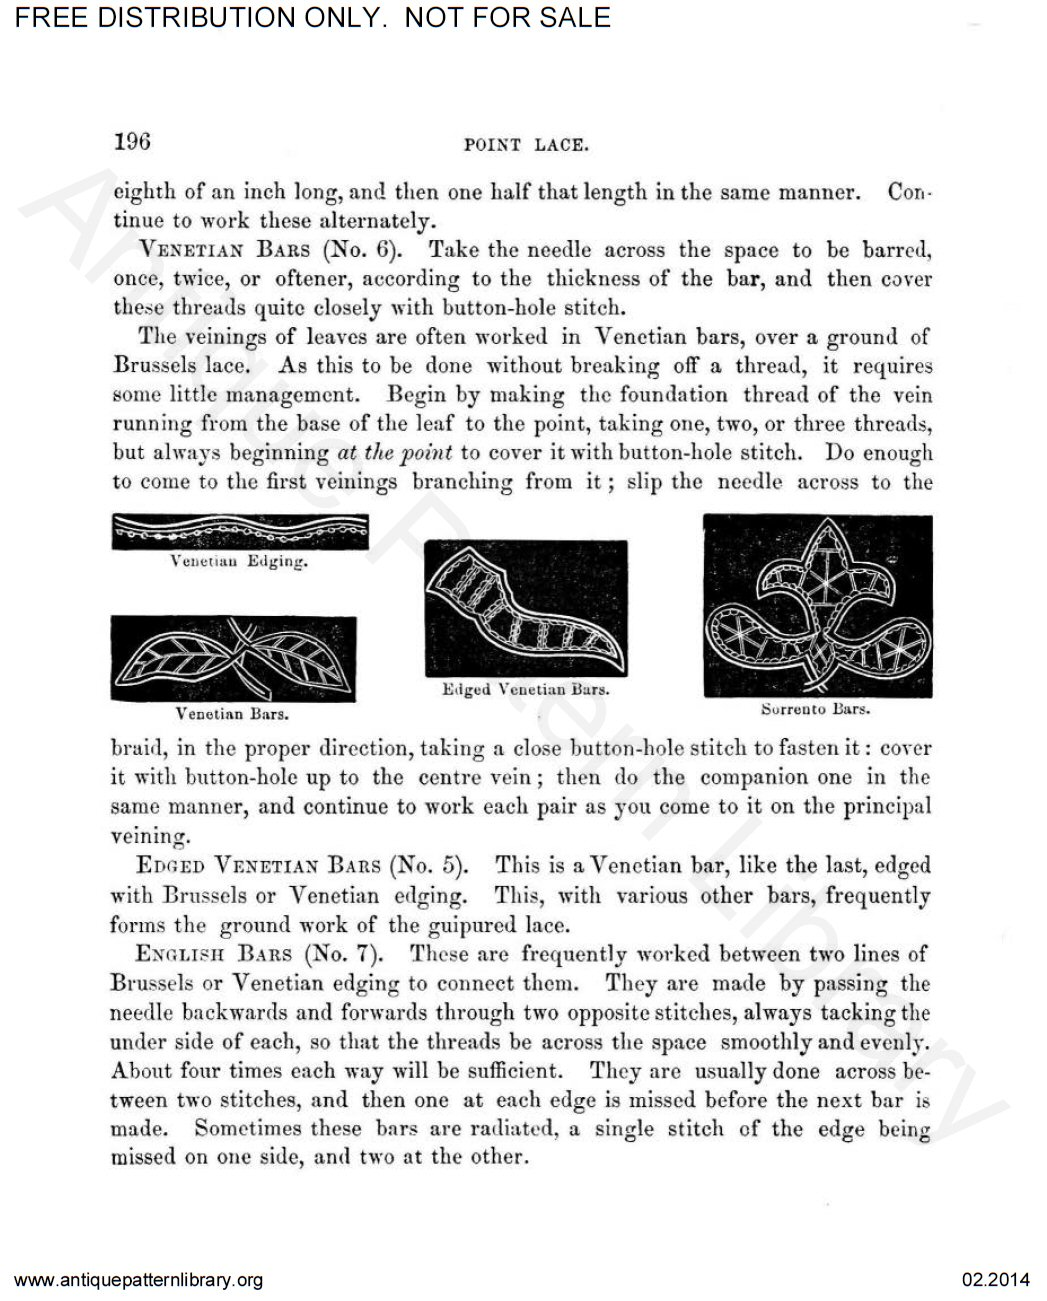 C-HW001 Ladies' Hand Book of Fancy and Ornamental Work